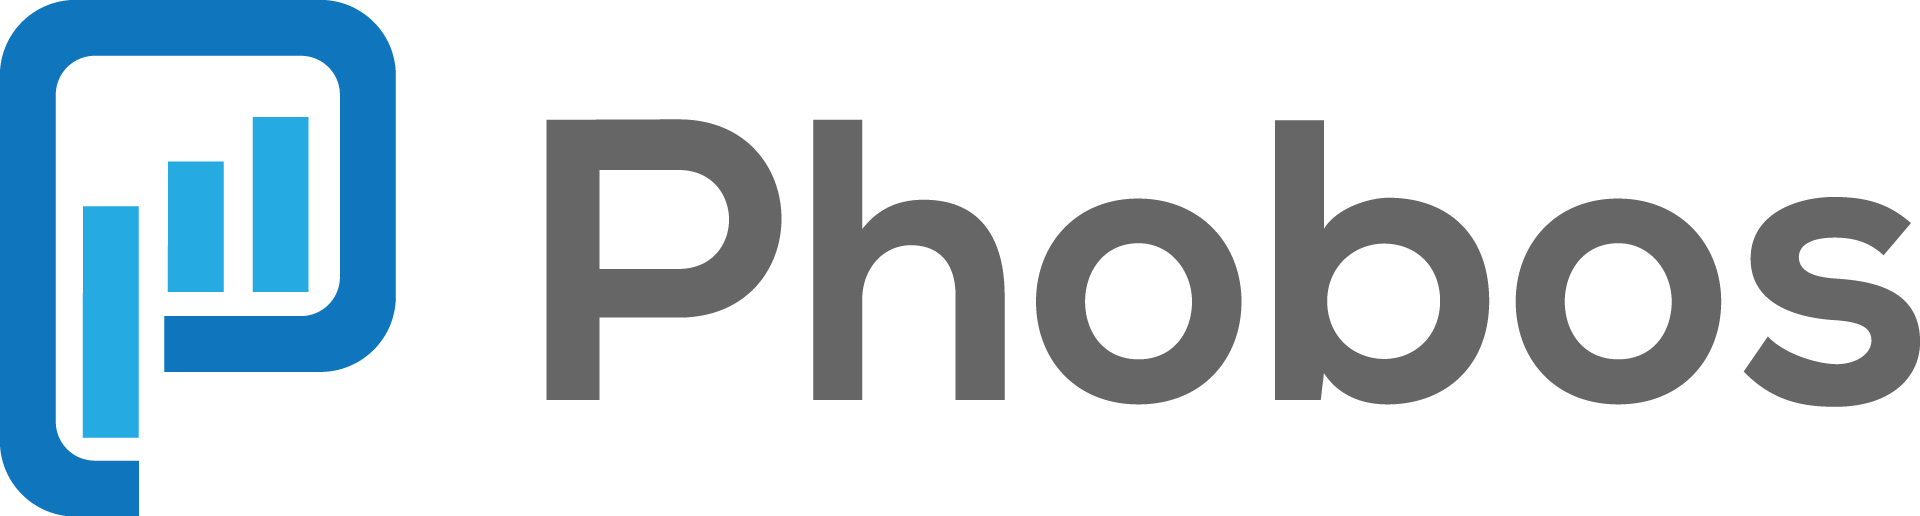 Phobos Akka.NET Monitoring, Tracing, and Observability Logo